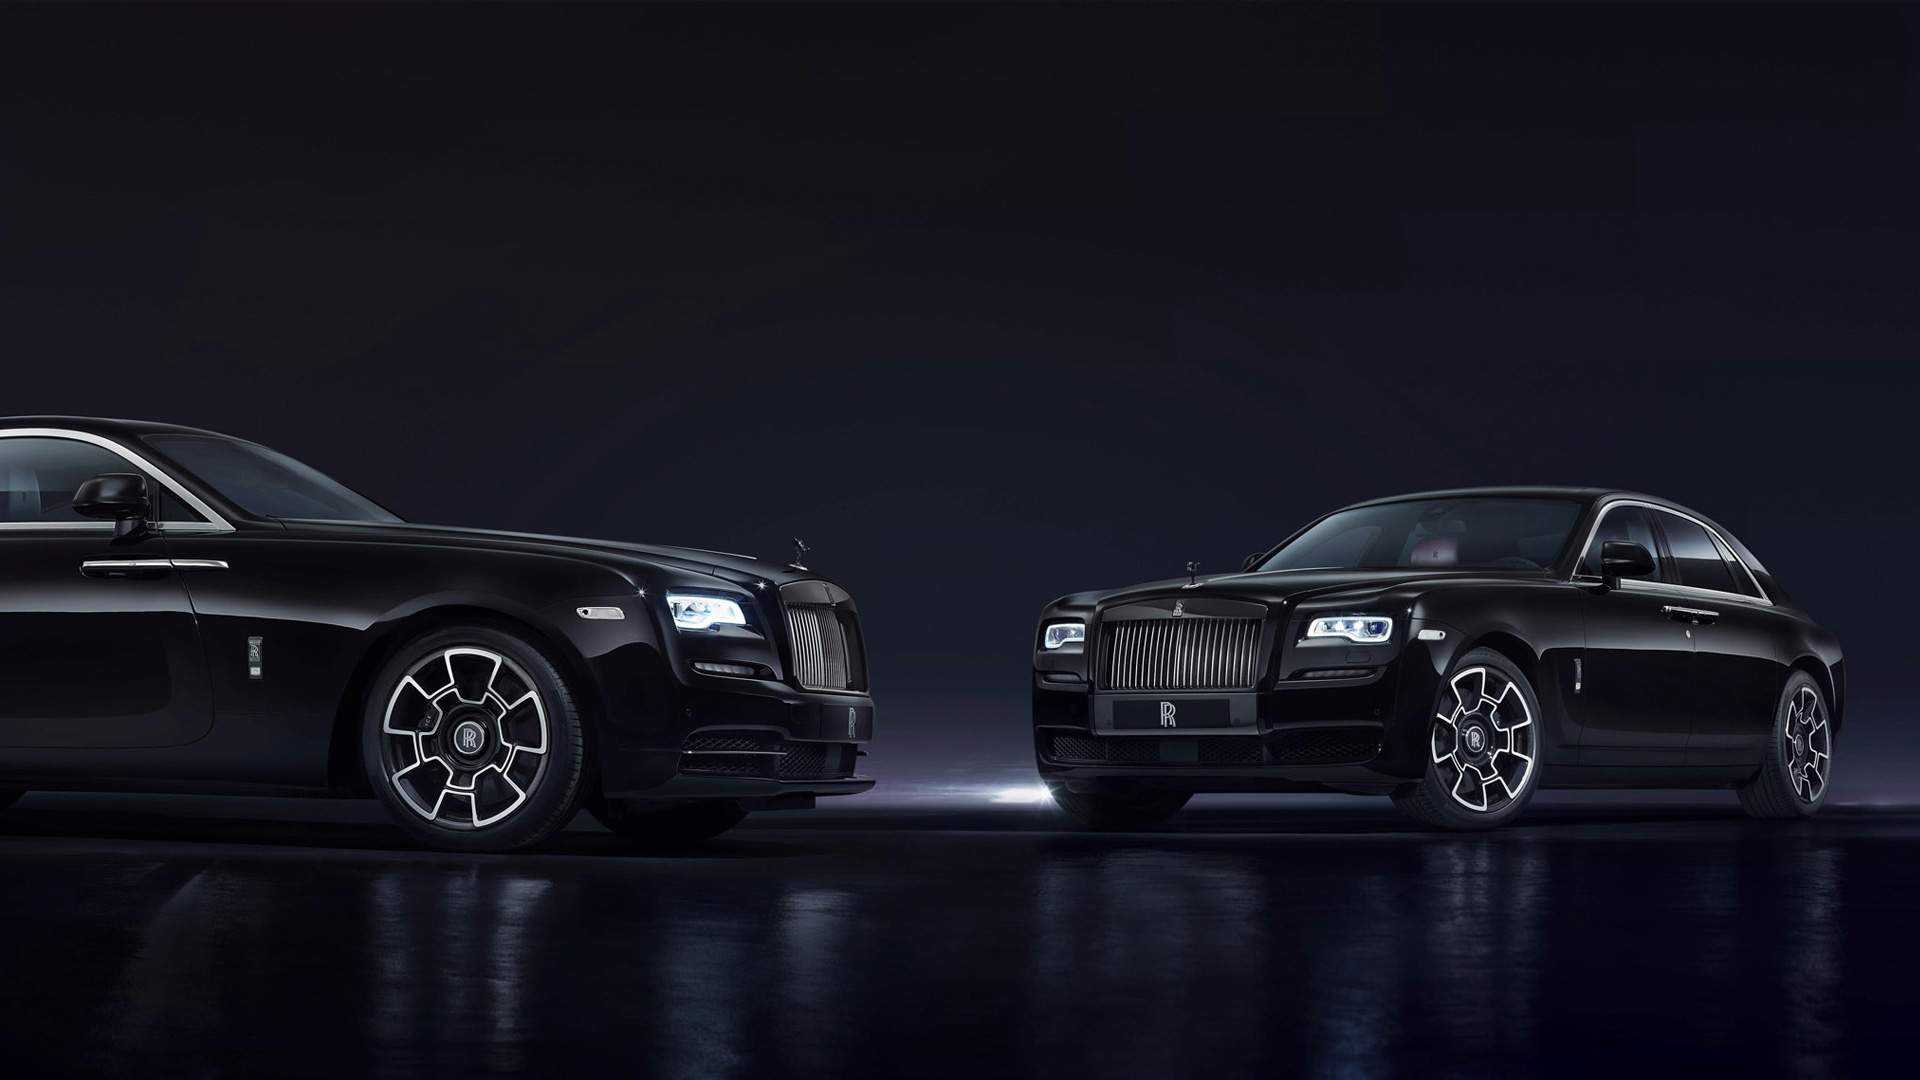 rolls royce ghost wraith black badge 2016 wallpaper hd